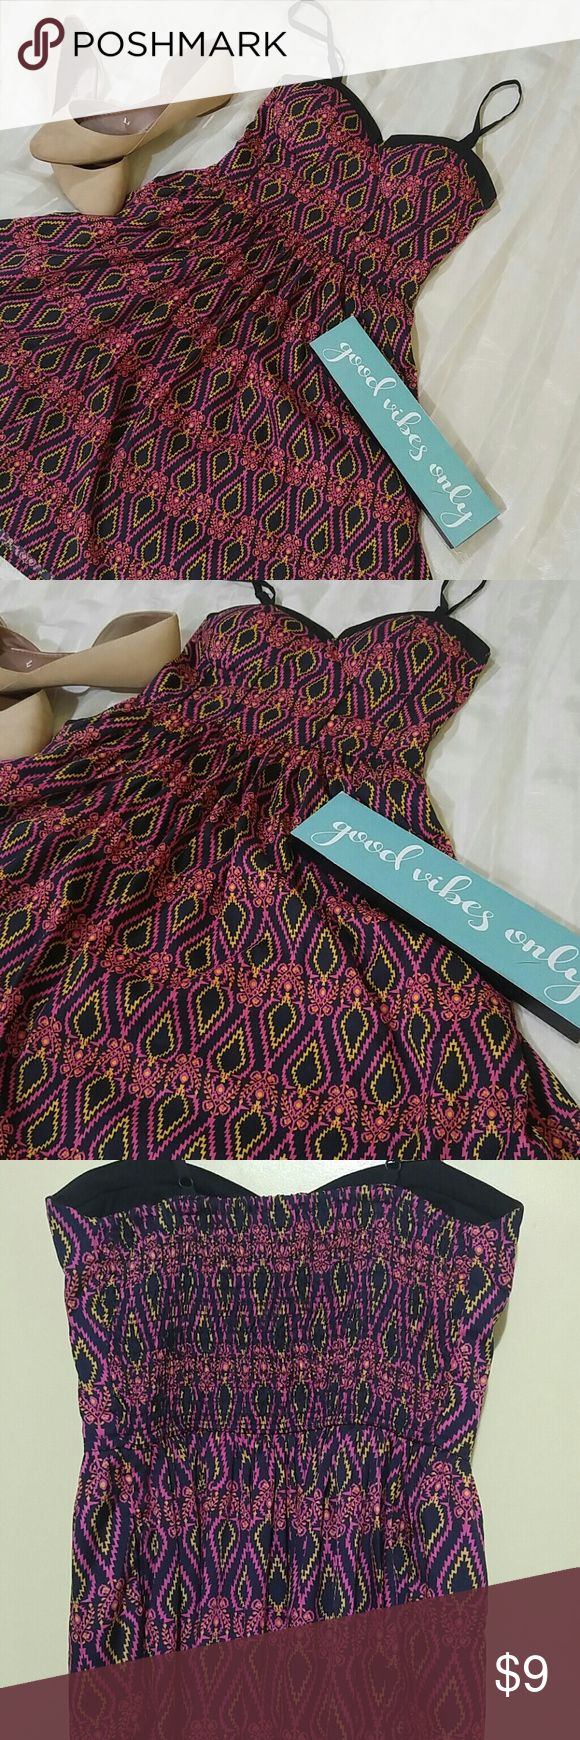 🎉American Rag printed dress🎉 Really cute and great for summer☺ Lightly padded and stretchable waist. EUC no visible signs of rips, holes, or tear. American Rag Dresses